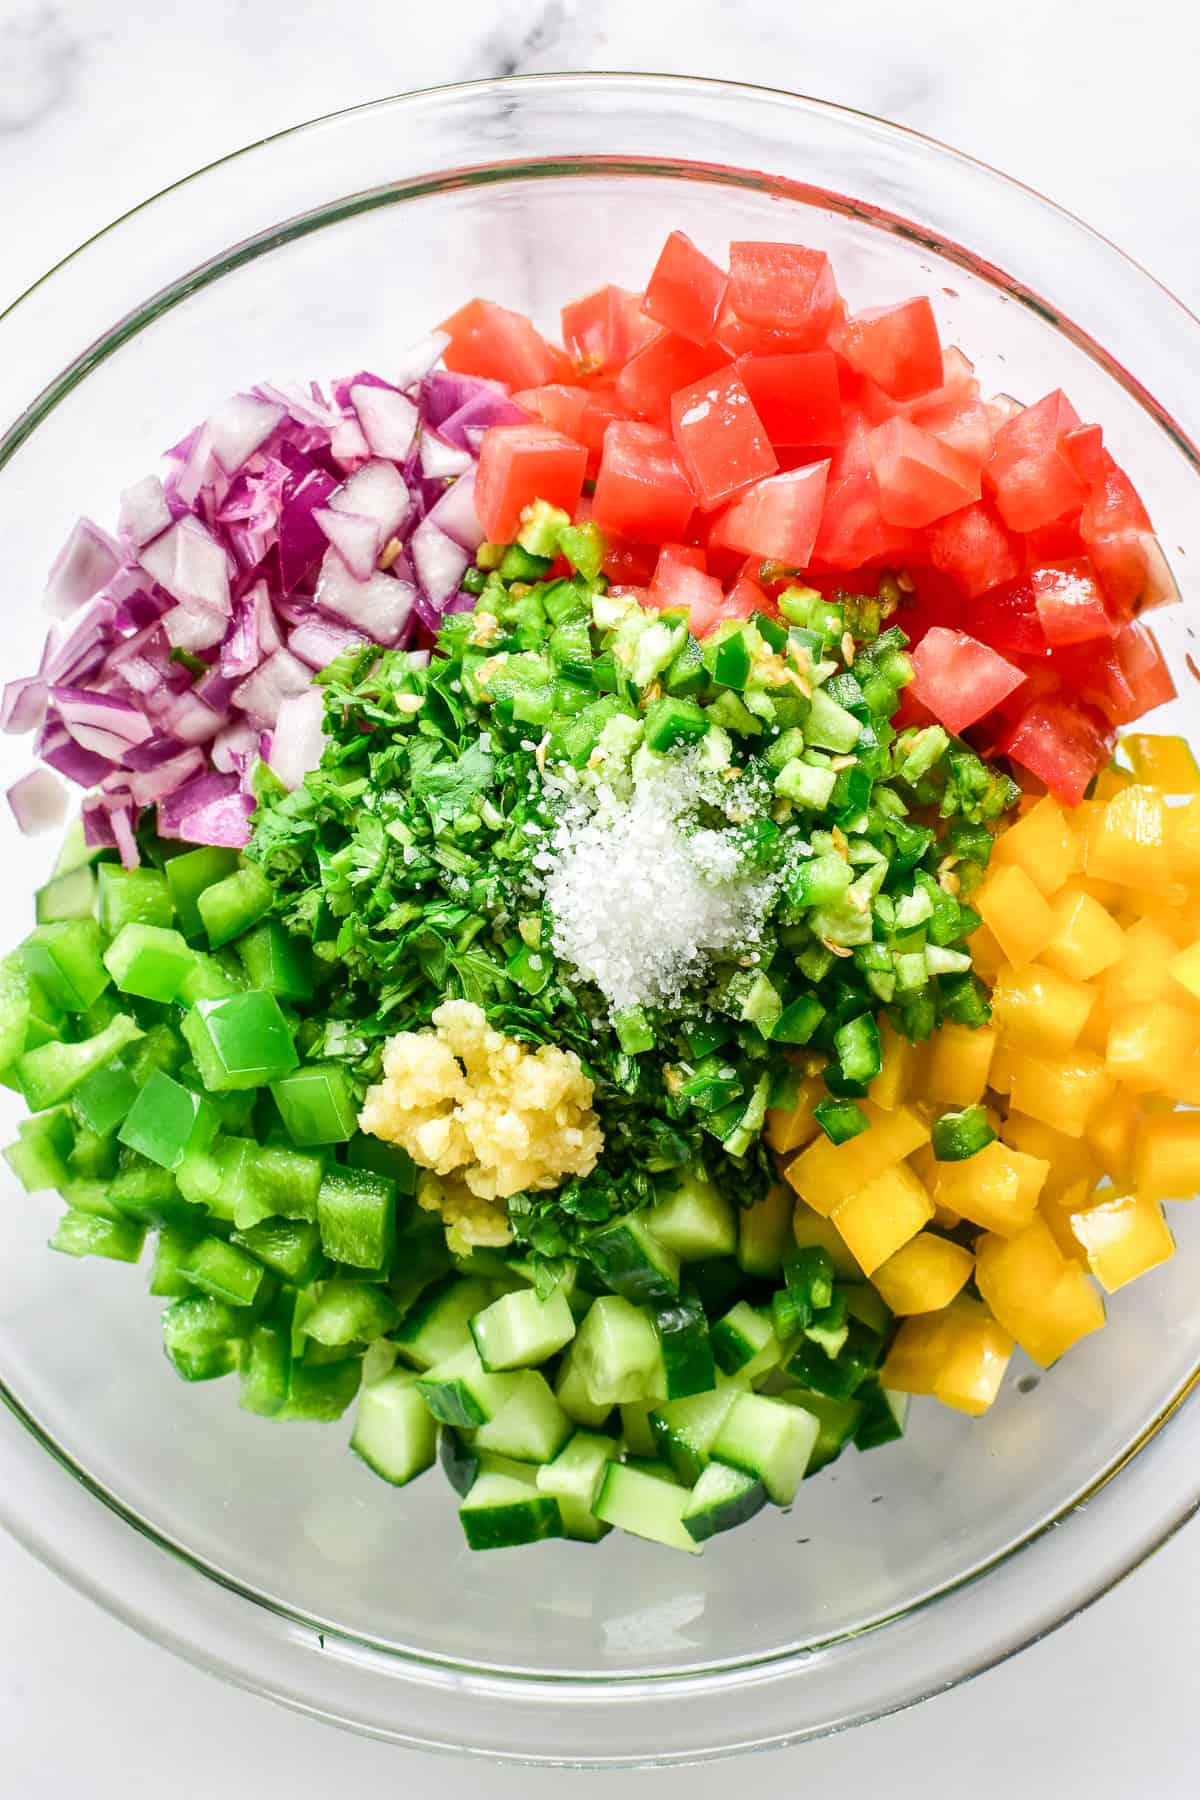 Cucumber Salsa ingredients in a mixing bowl